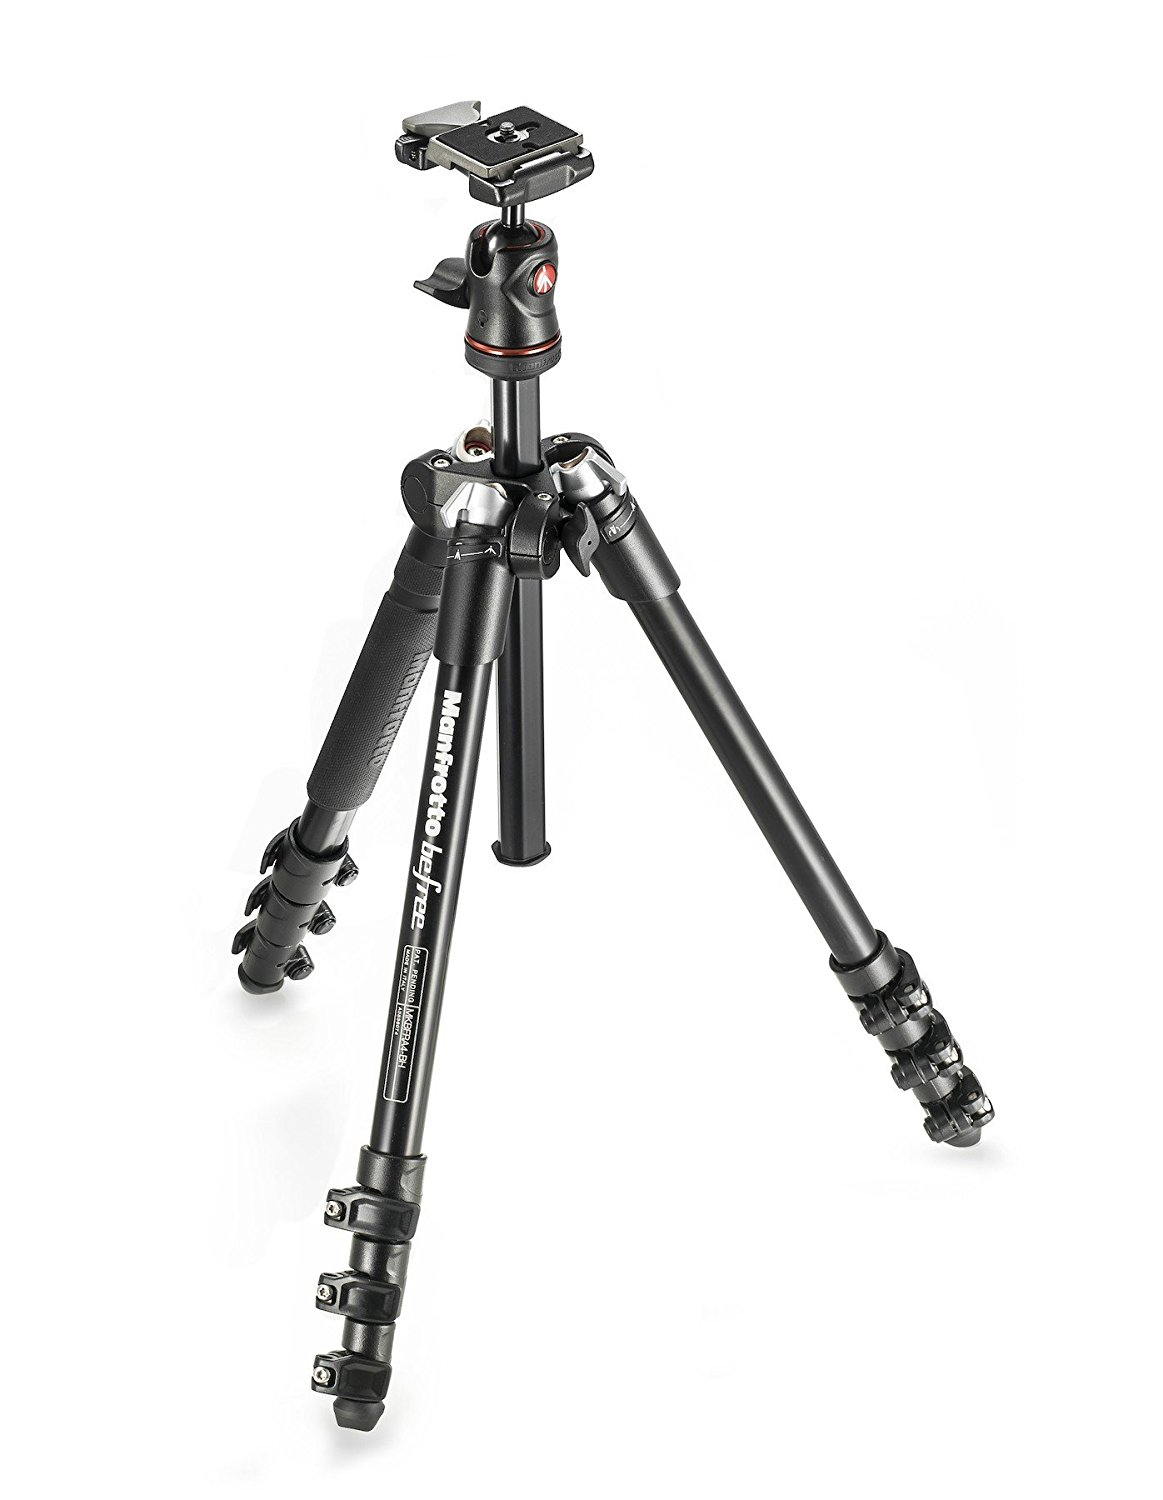 manfrotto befree compact tripod, travel tripod, best travel tripods, best tripods for travelling